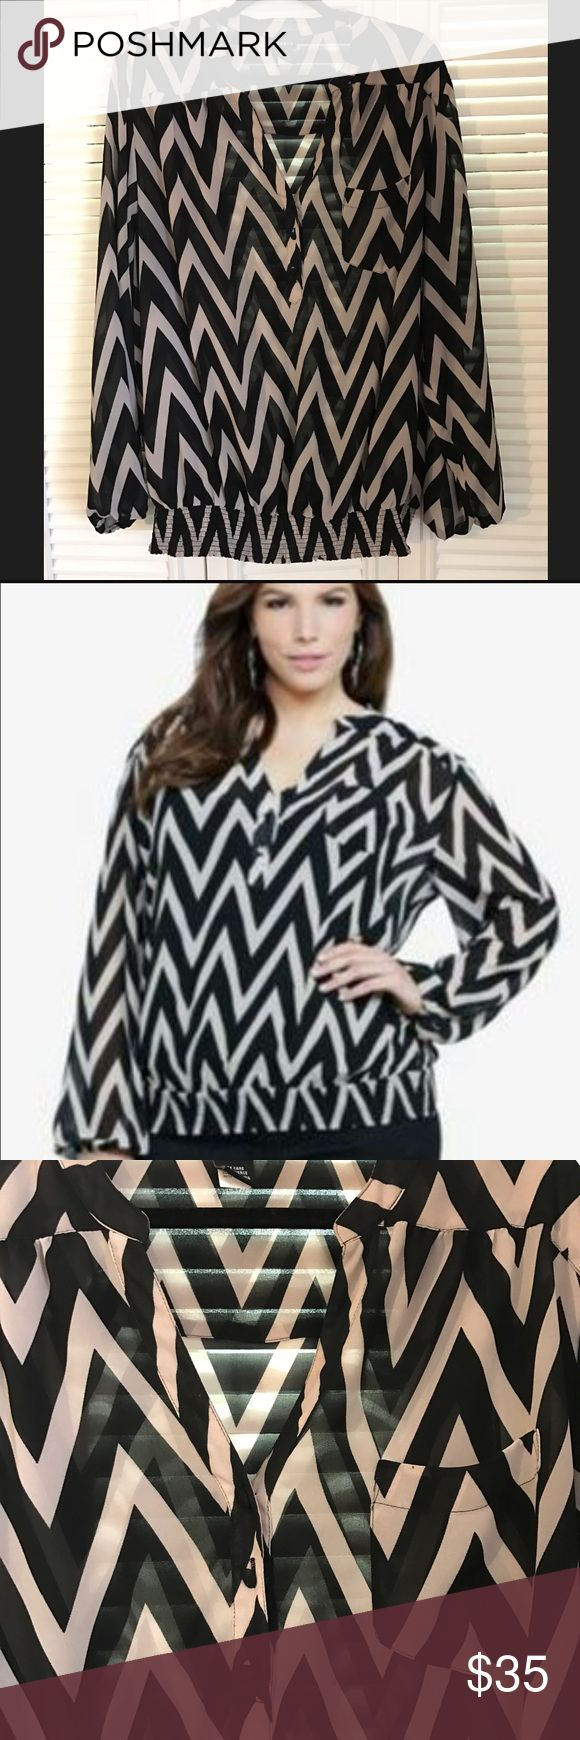 Chevron top! Must have! Make waves with a unique print! This taupe & black chevron print to be specific (it's redefining eye-catching). Splashed onto breezy (and sheer) chiffon, the dolman top gets a bold boost from the elastic waist band! torrid Tops Blouses